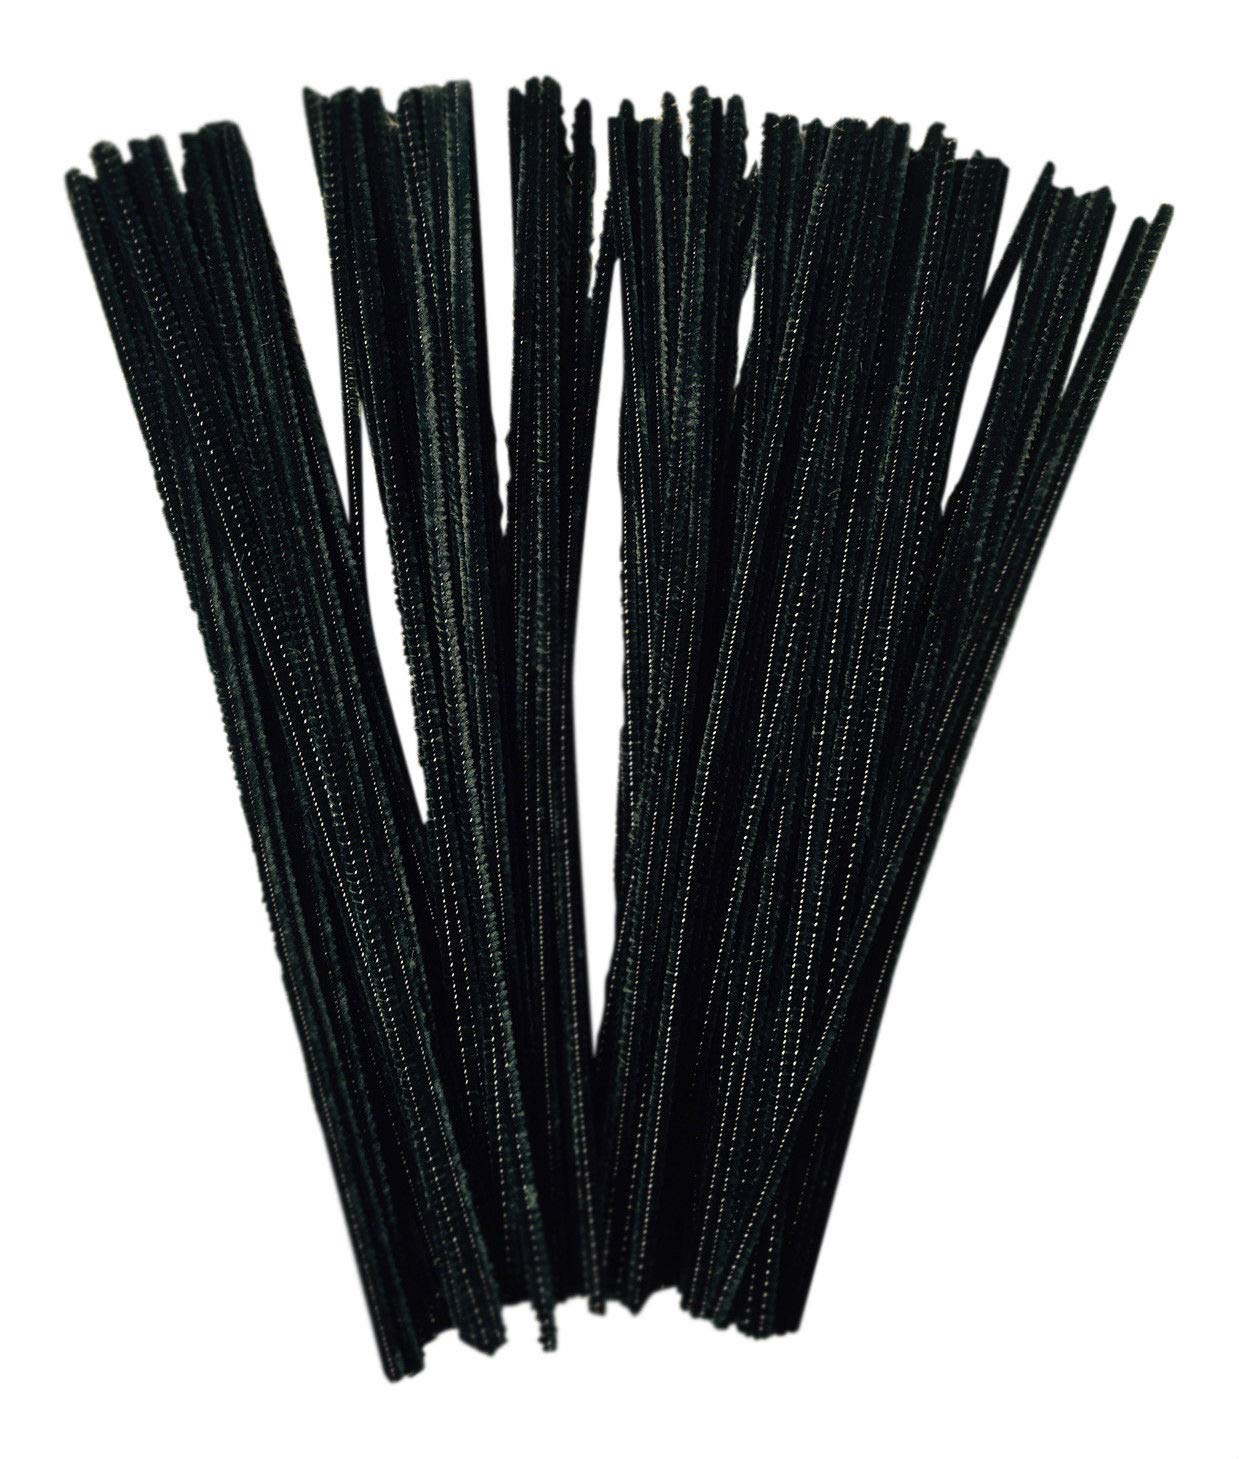 700 Pieces Pipe Cleaners Set, for Craft DIY Art Supplies